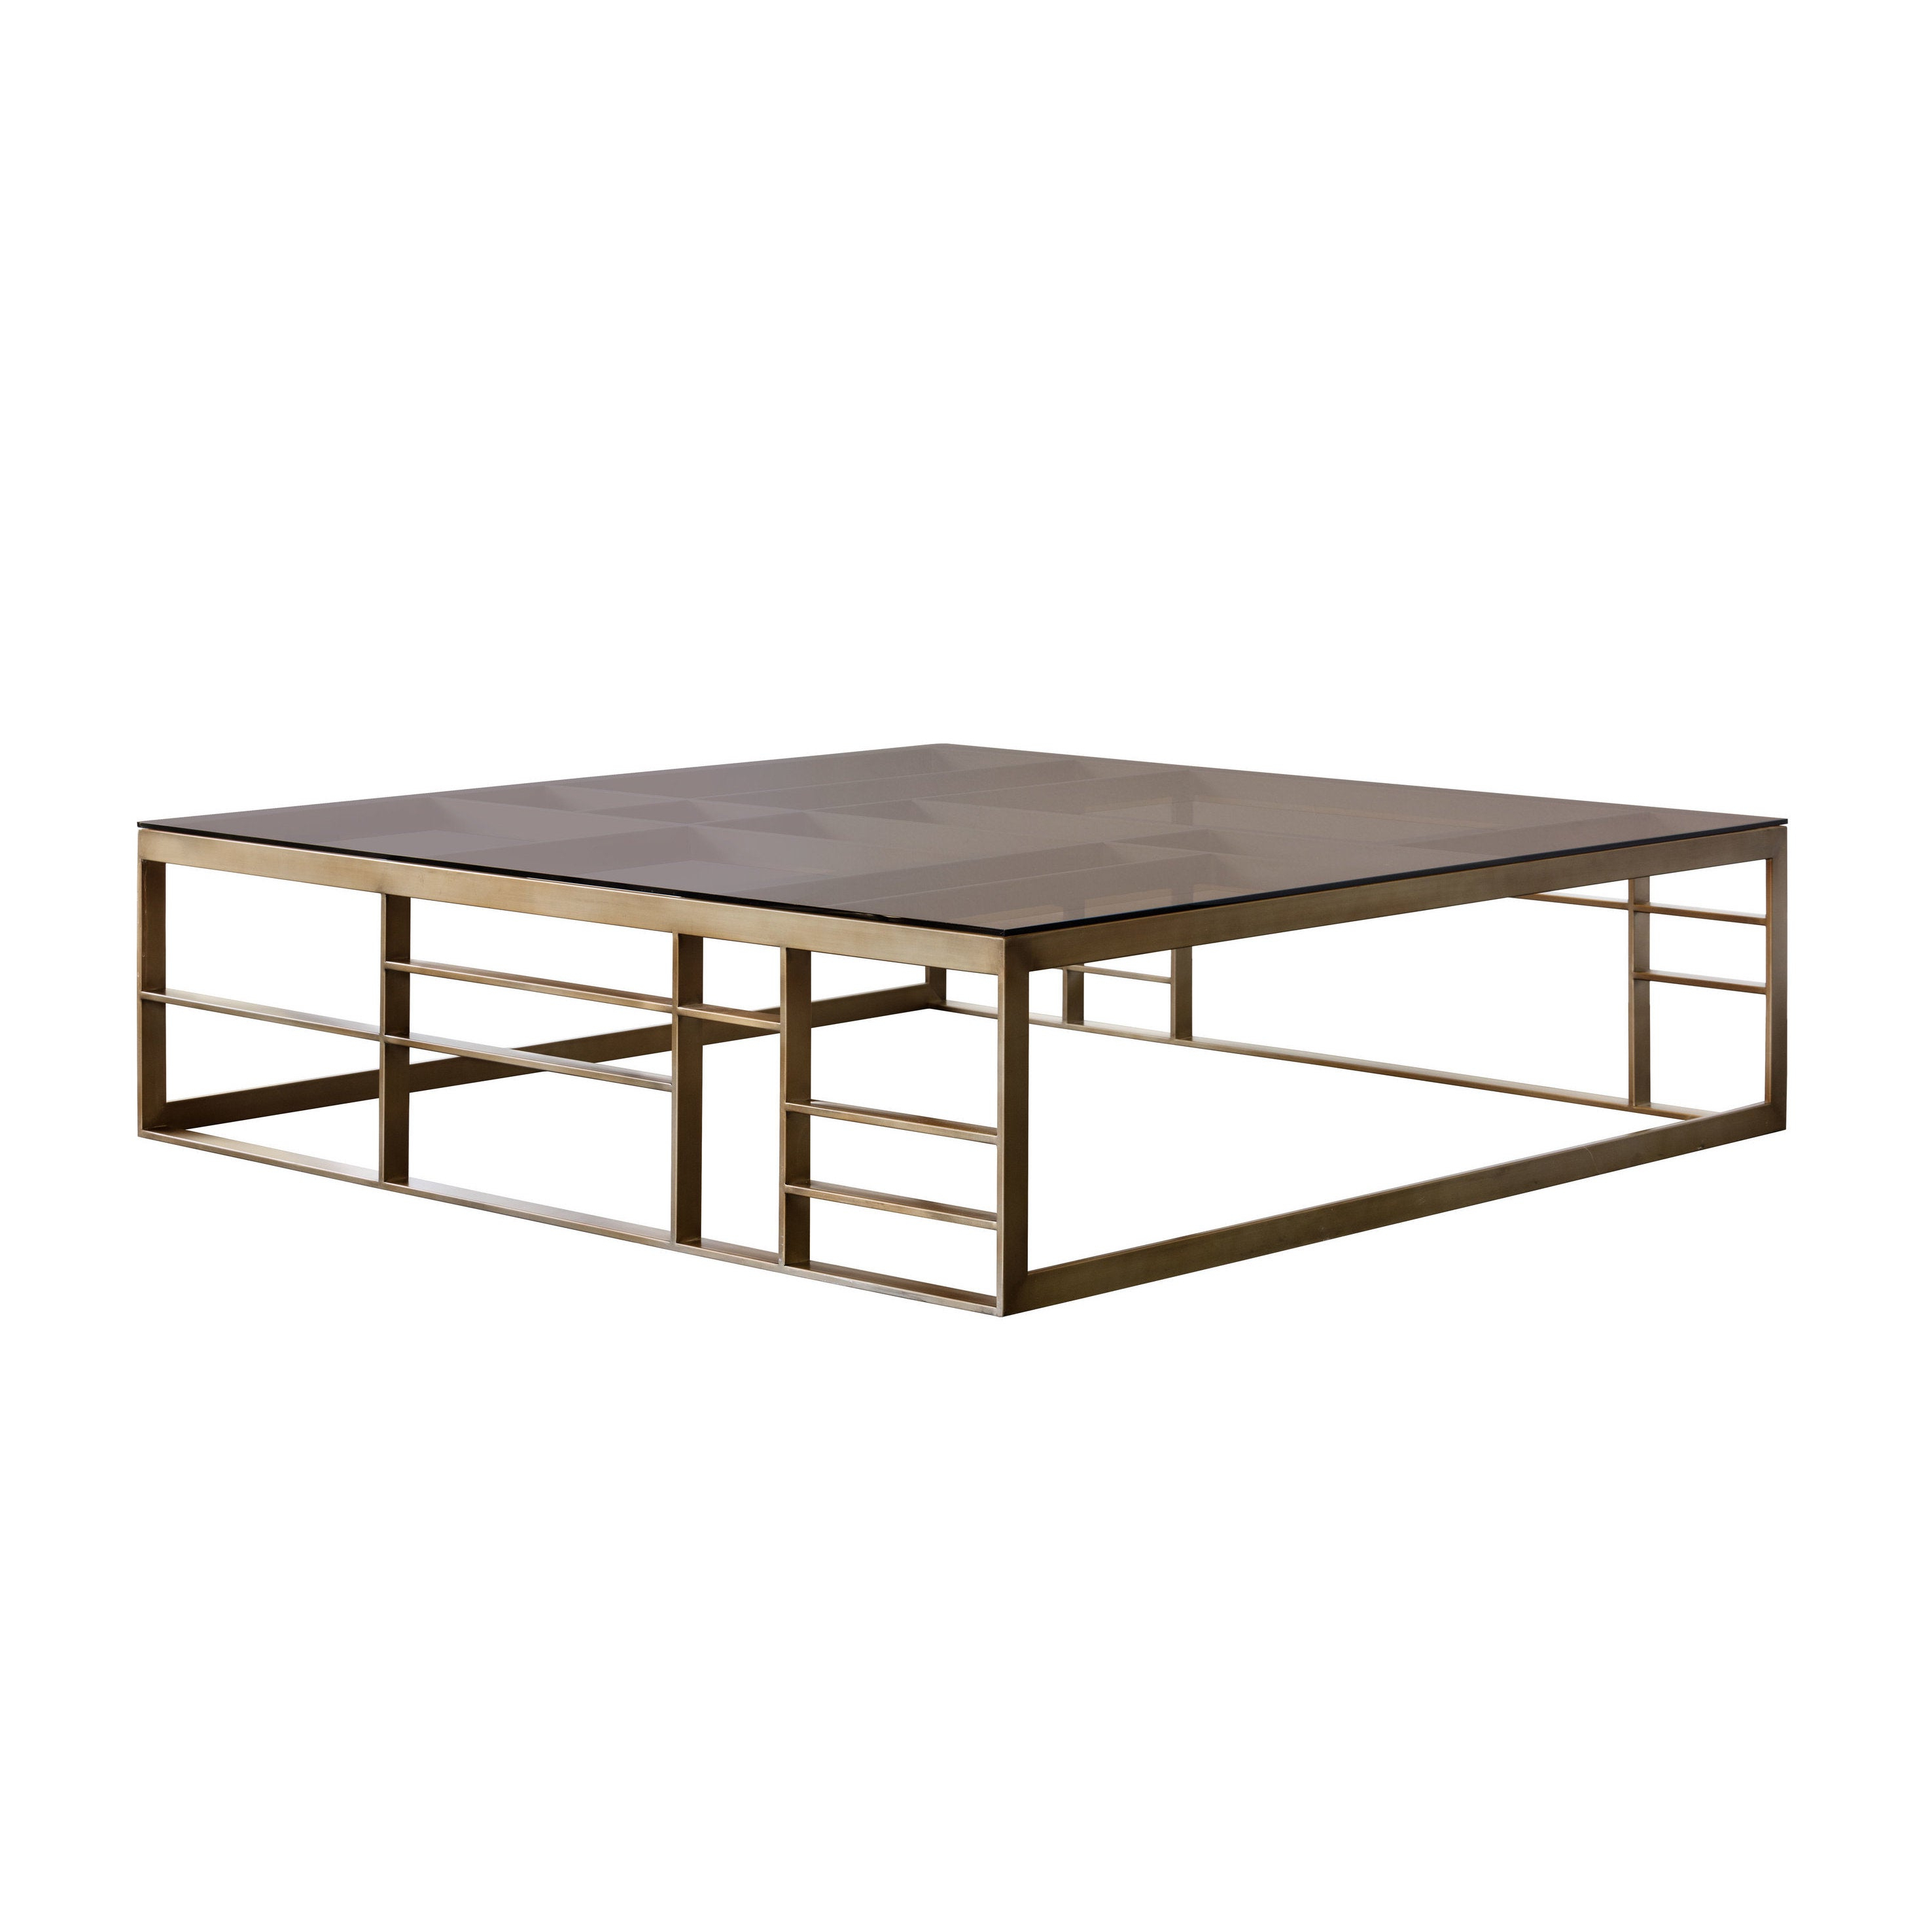 Sunpan Joanna Antique Brass And Brown Glass Square Coffee Table For 2019 Paris Natural Wood And Iron 30 Inch Square Coffee Tables (View 15 of 20)